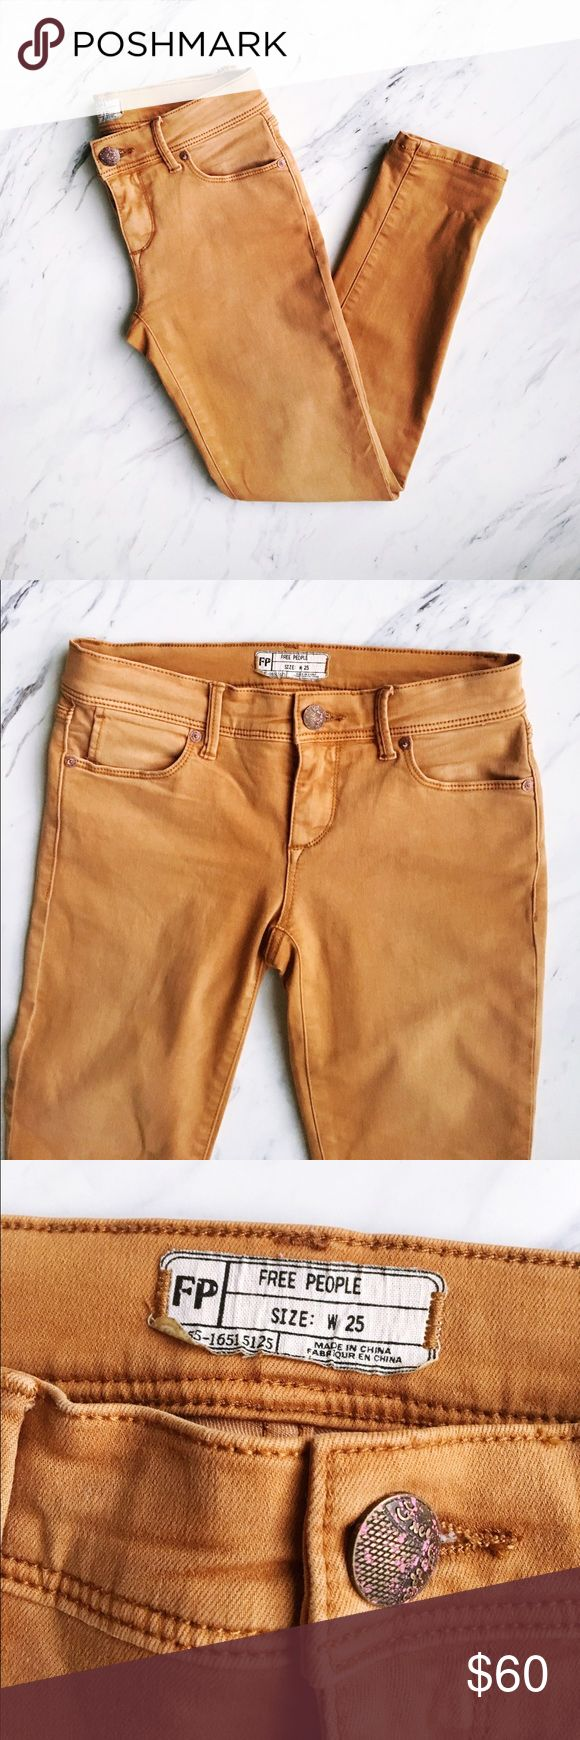 Free People Camel Skinny Jeans NWOT Perfect condition, never worn. Beauuuuutifil color, so badly wish they were my size! Perfect neutral jean for spring! Pair with a camel sweater for a monochromatic outfit or a white tee for a laid back look. Free People Jeans Skinny